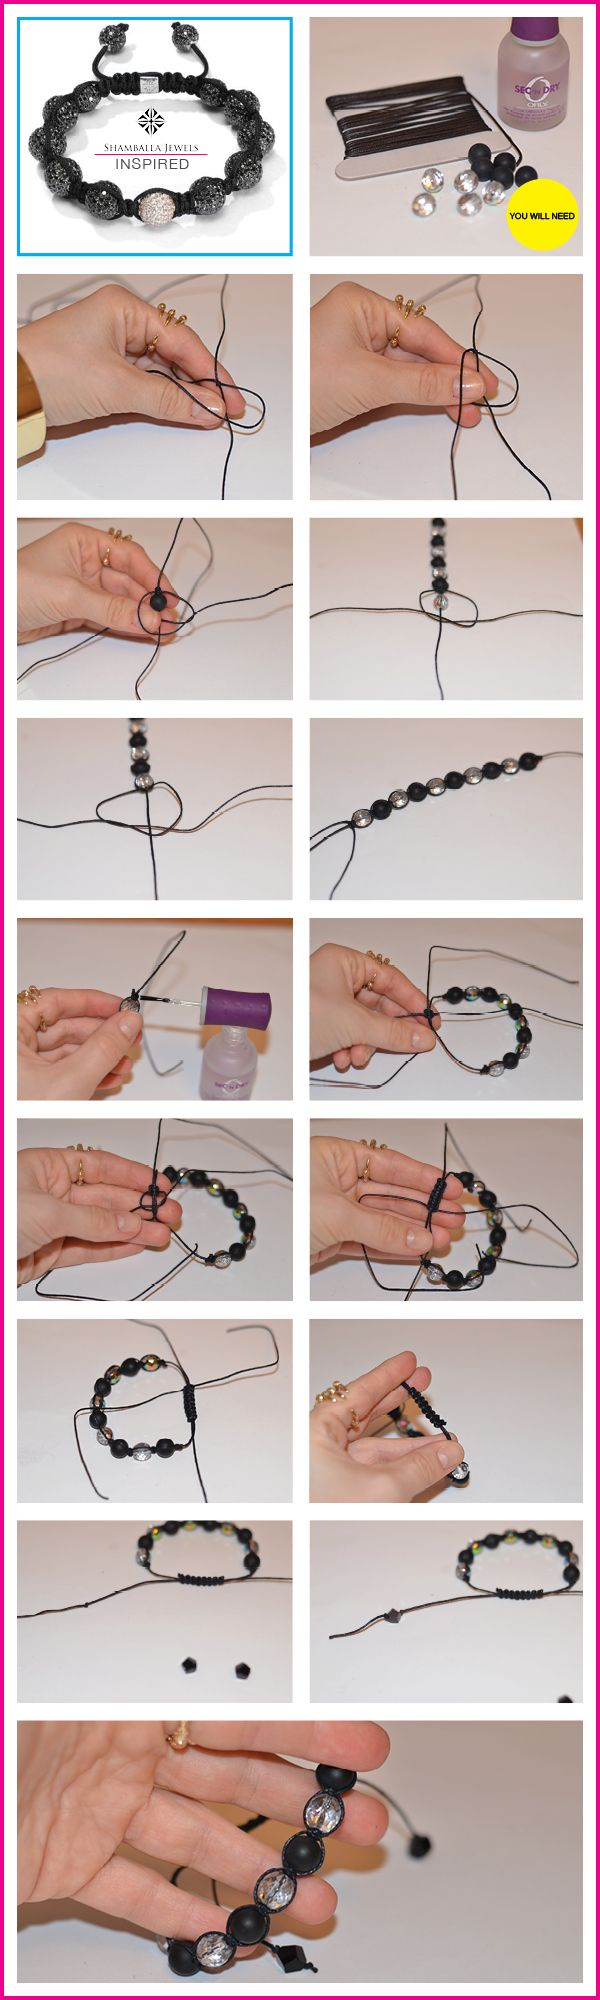 Guest Post: DIY Shamballa Bracelet from Katrine of Make It and Fake It | Chic Steals